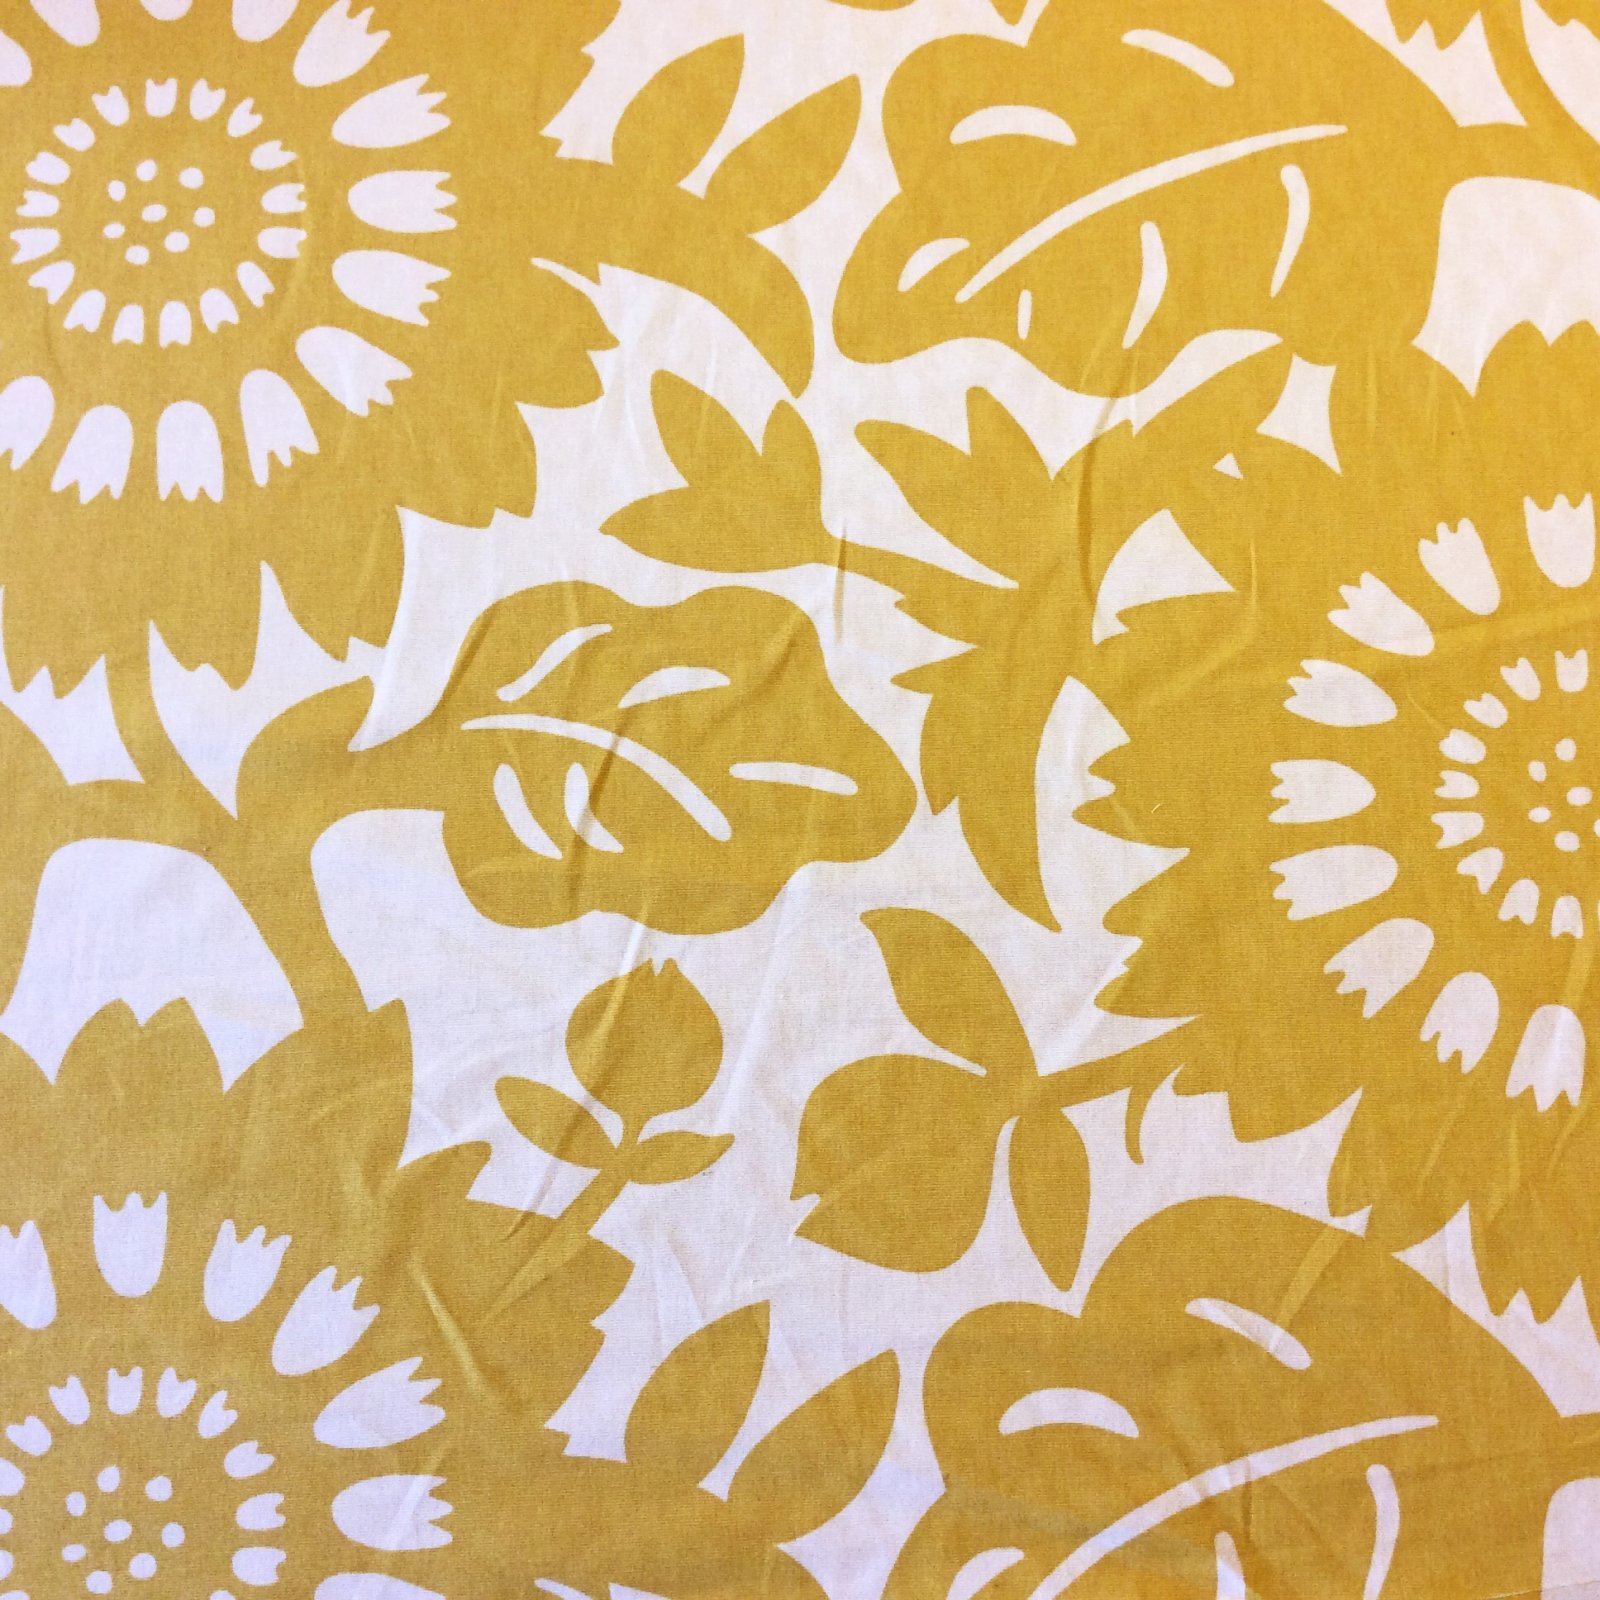 Thomas Paul Scandinavian Modern Floral Graphic Silouhette Large Scale Bold Heavy Cotton Fabric Sungold DSO134 R/O